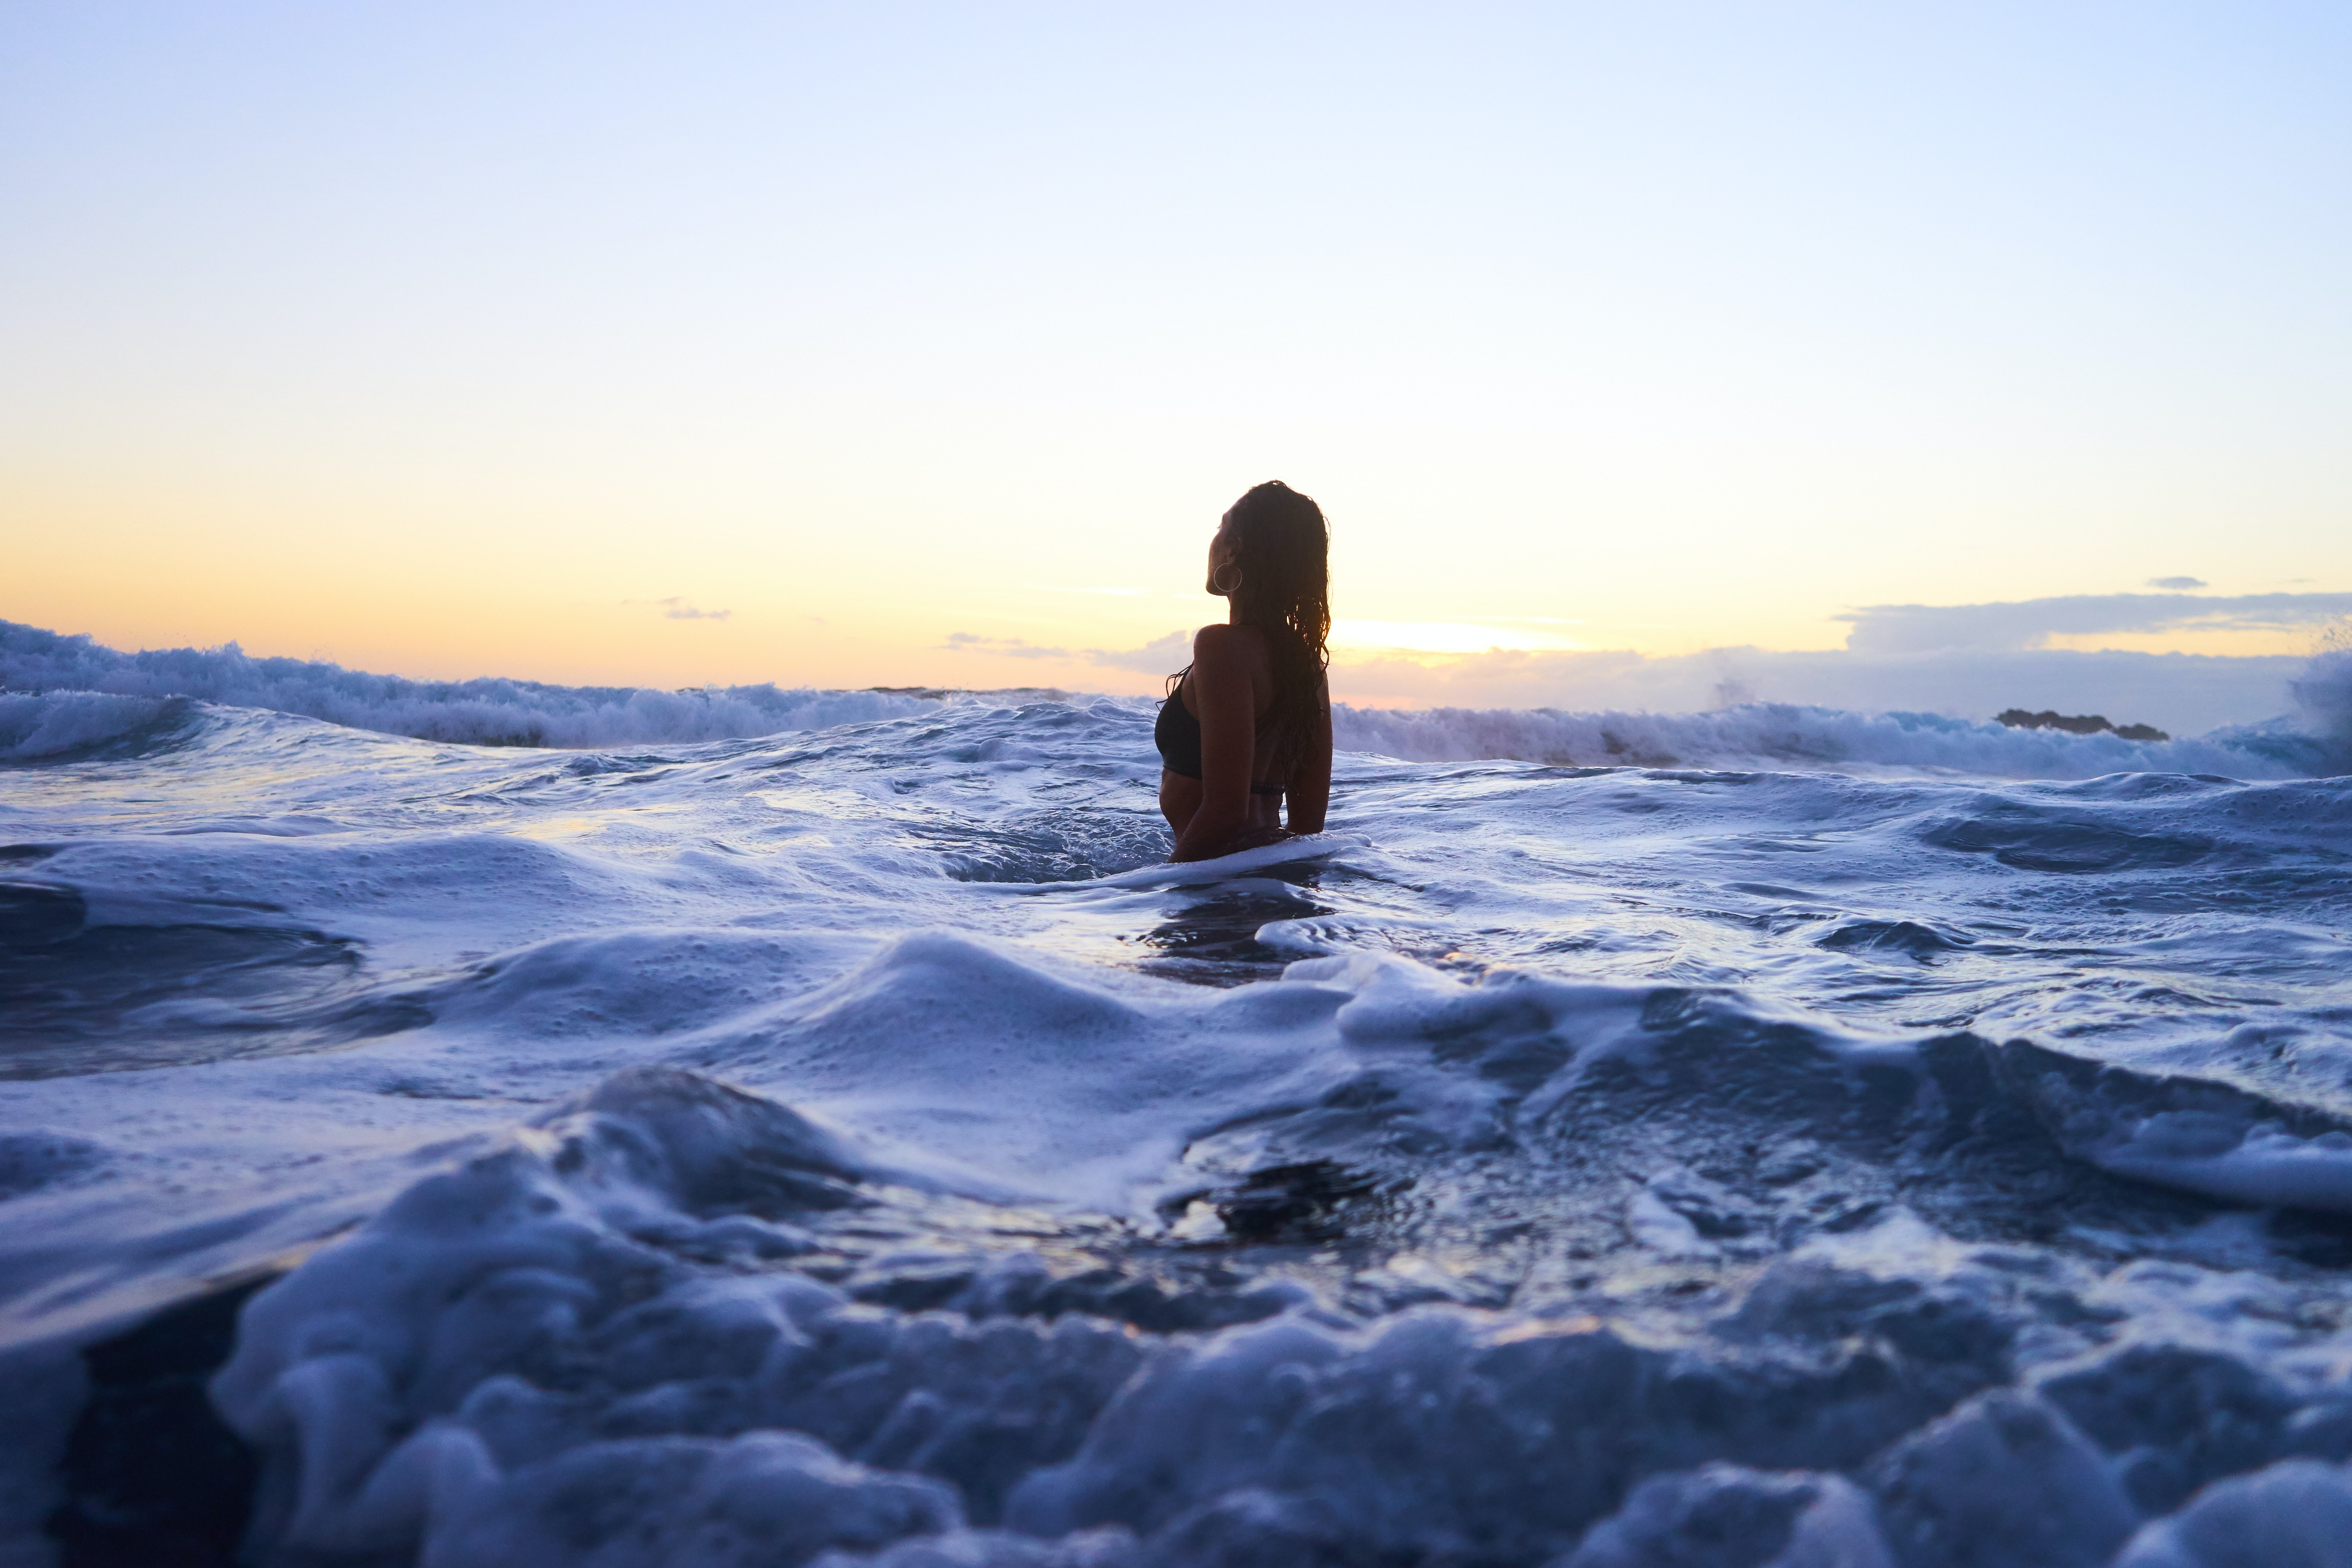 woman in body of water